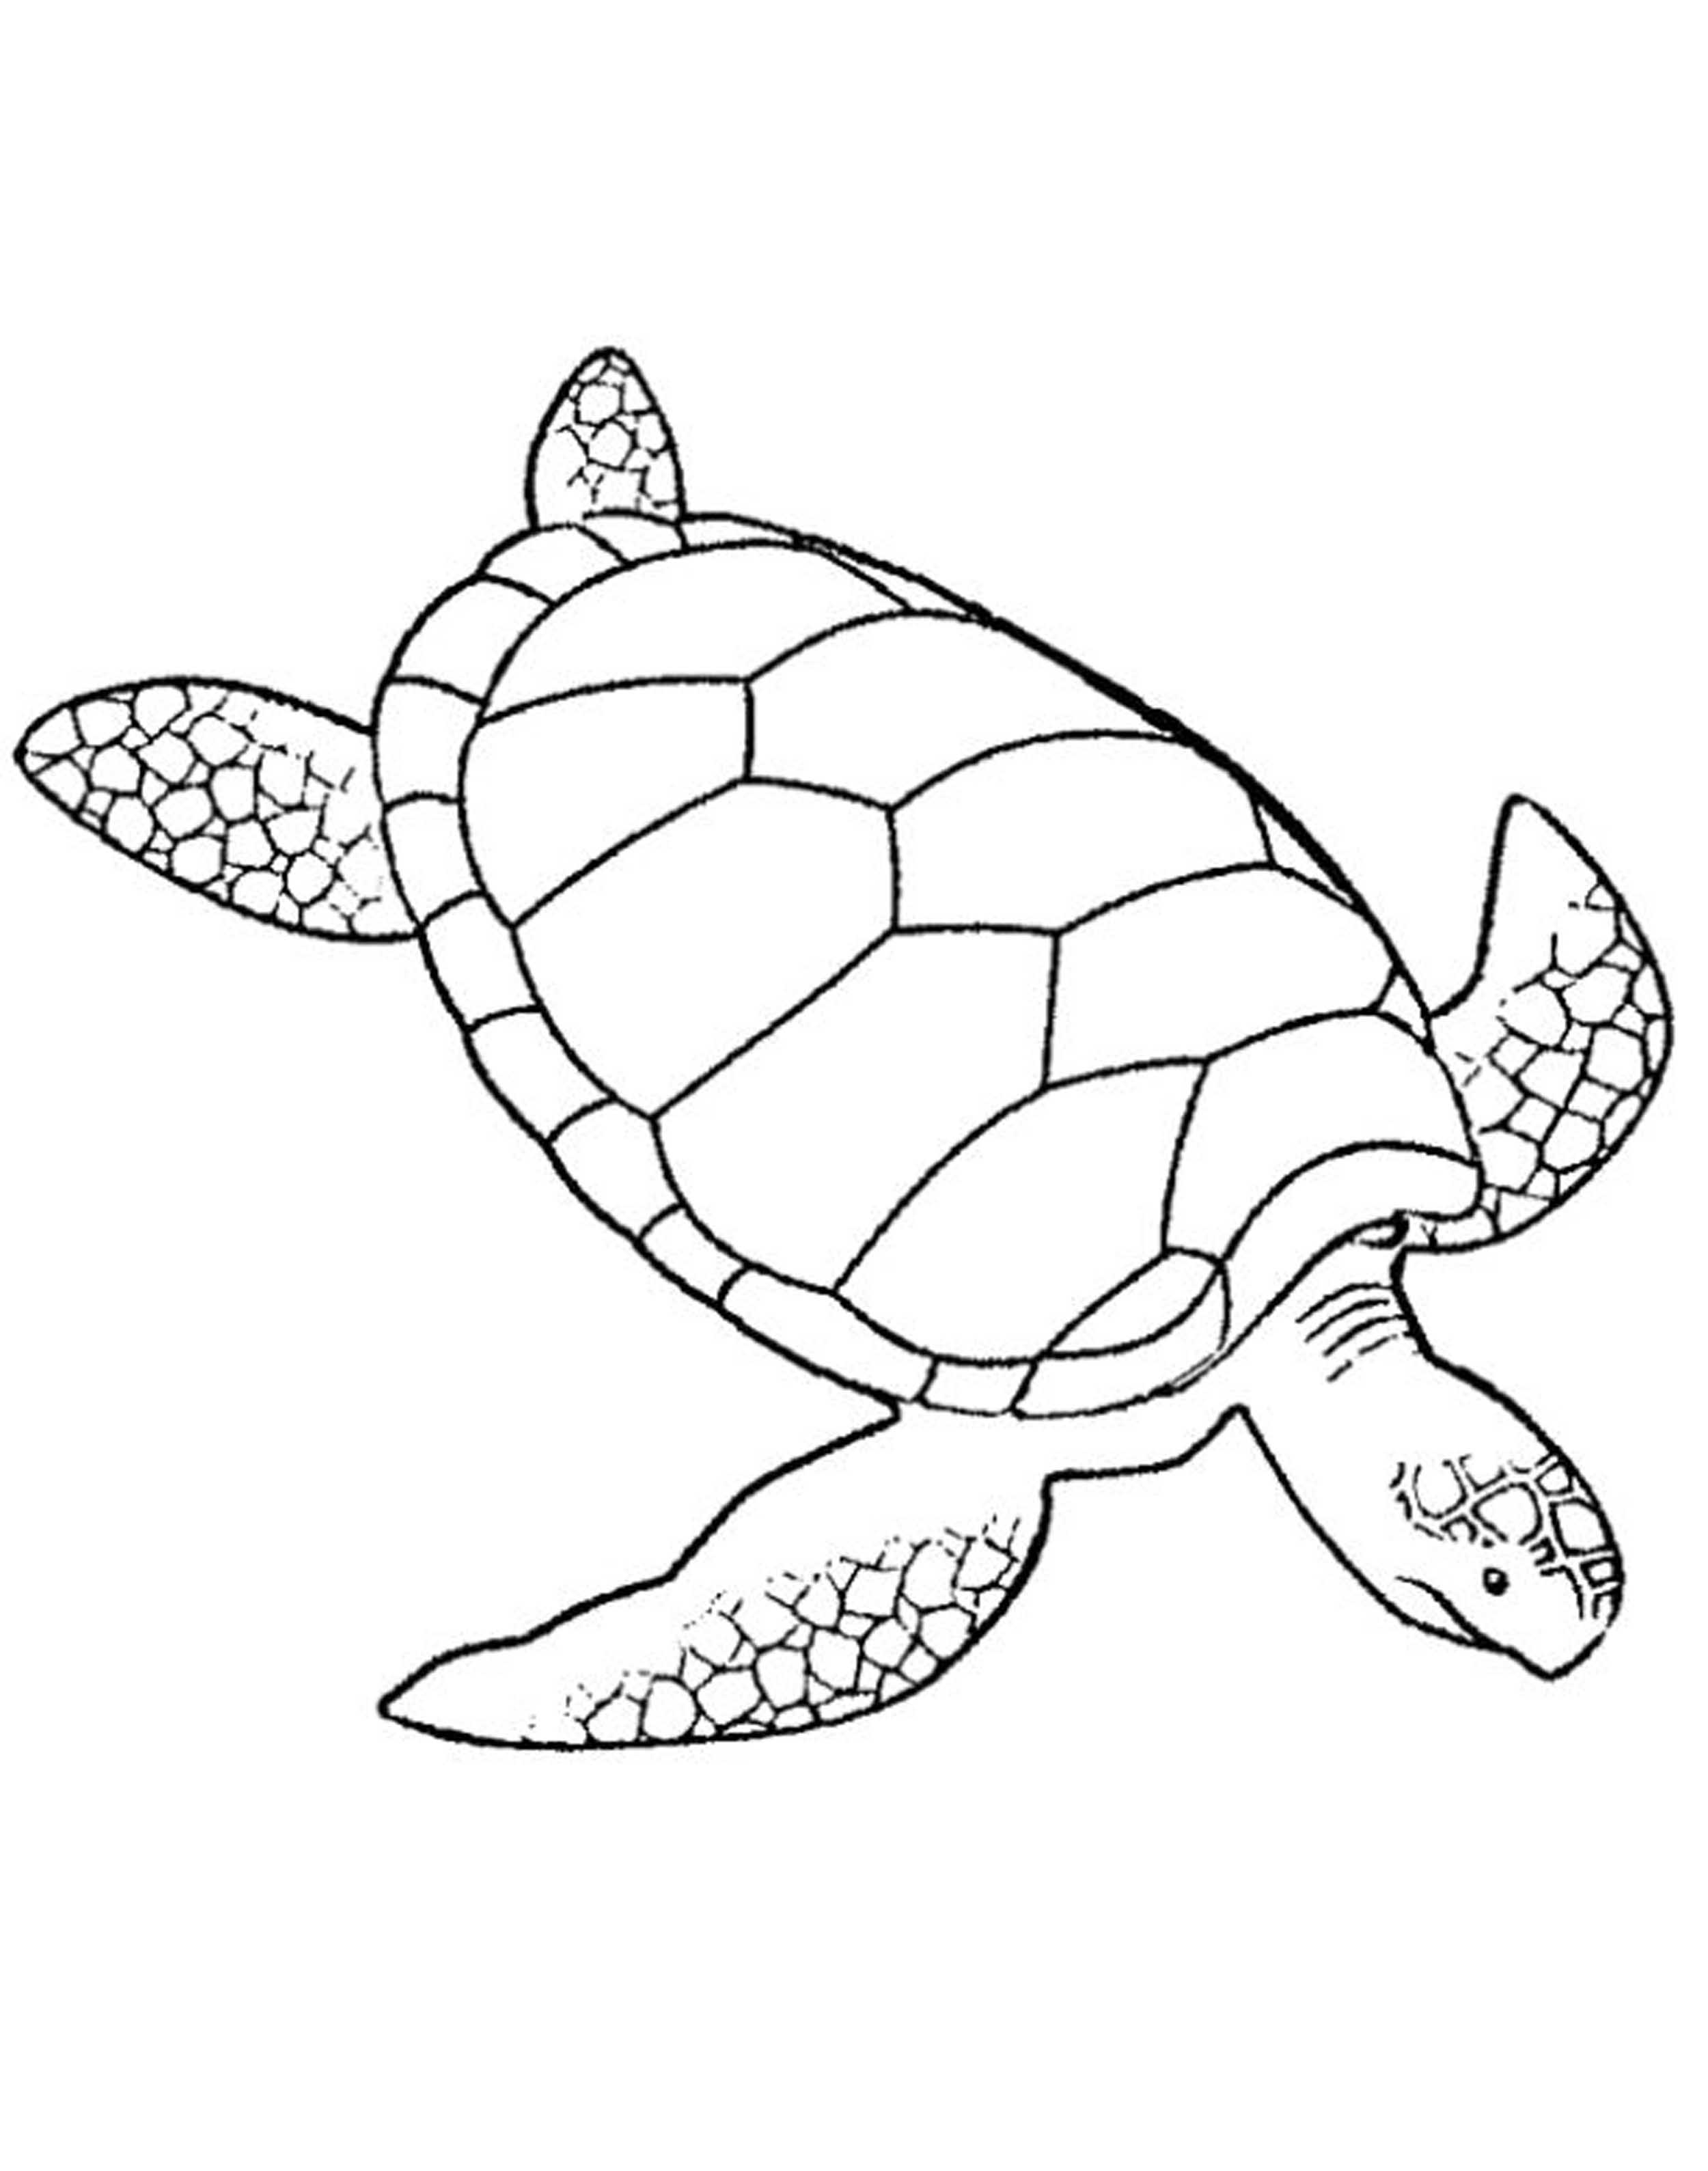 turtles colouring coloring pages turtles free printable coloring pages colouring turtles